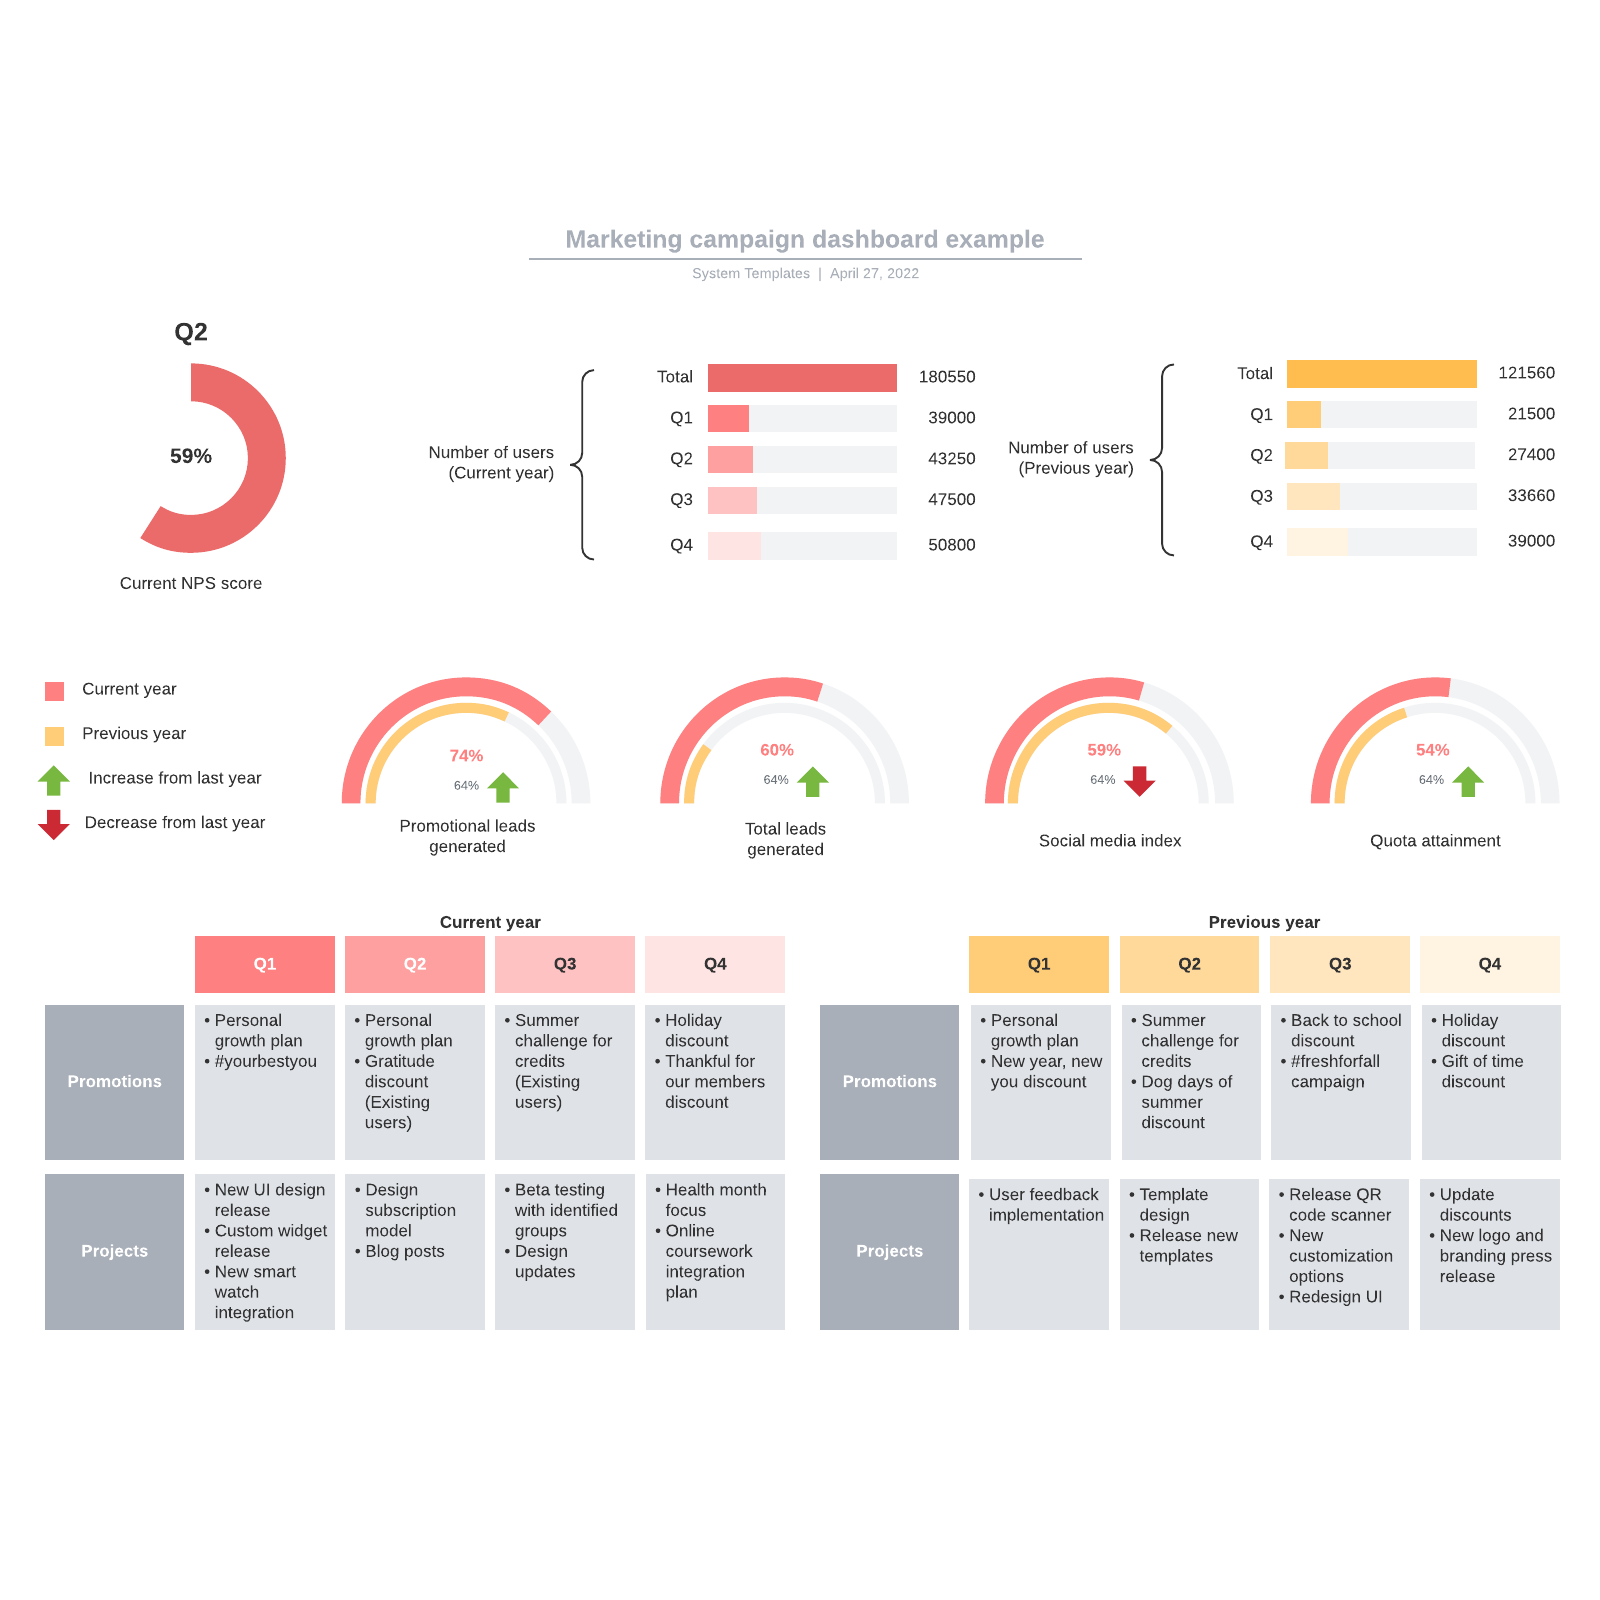 Marketing campaign dashboard example